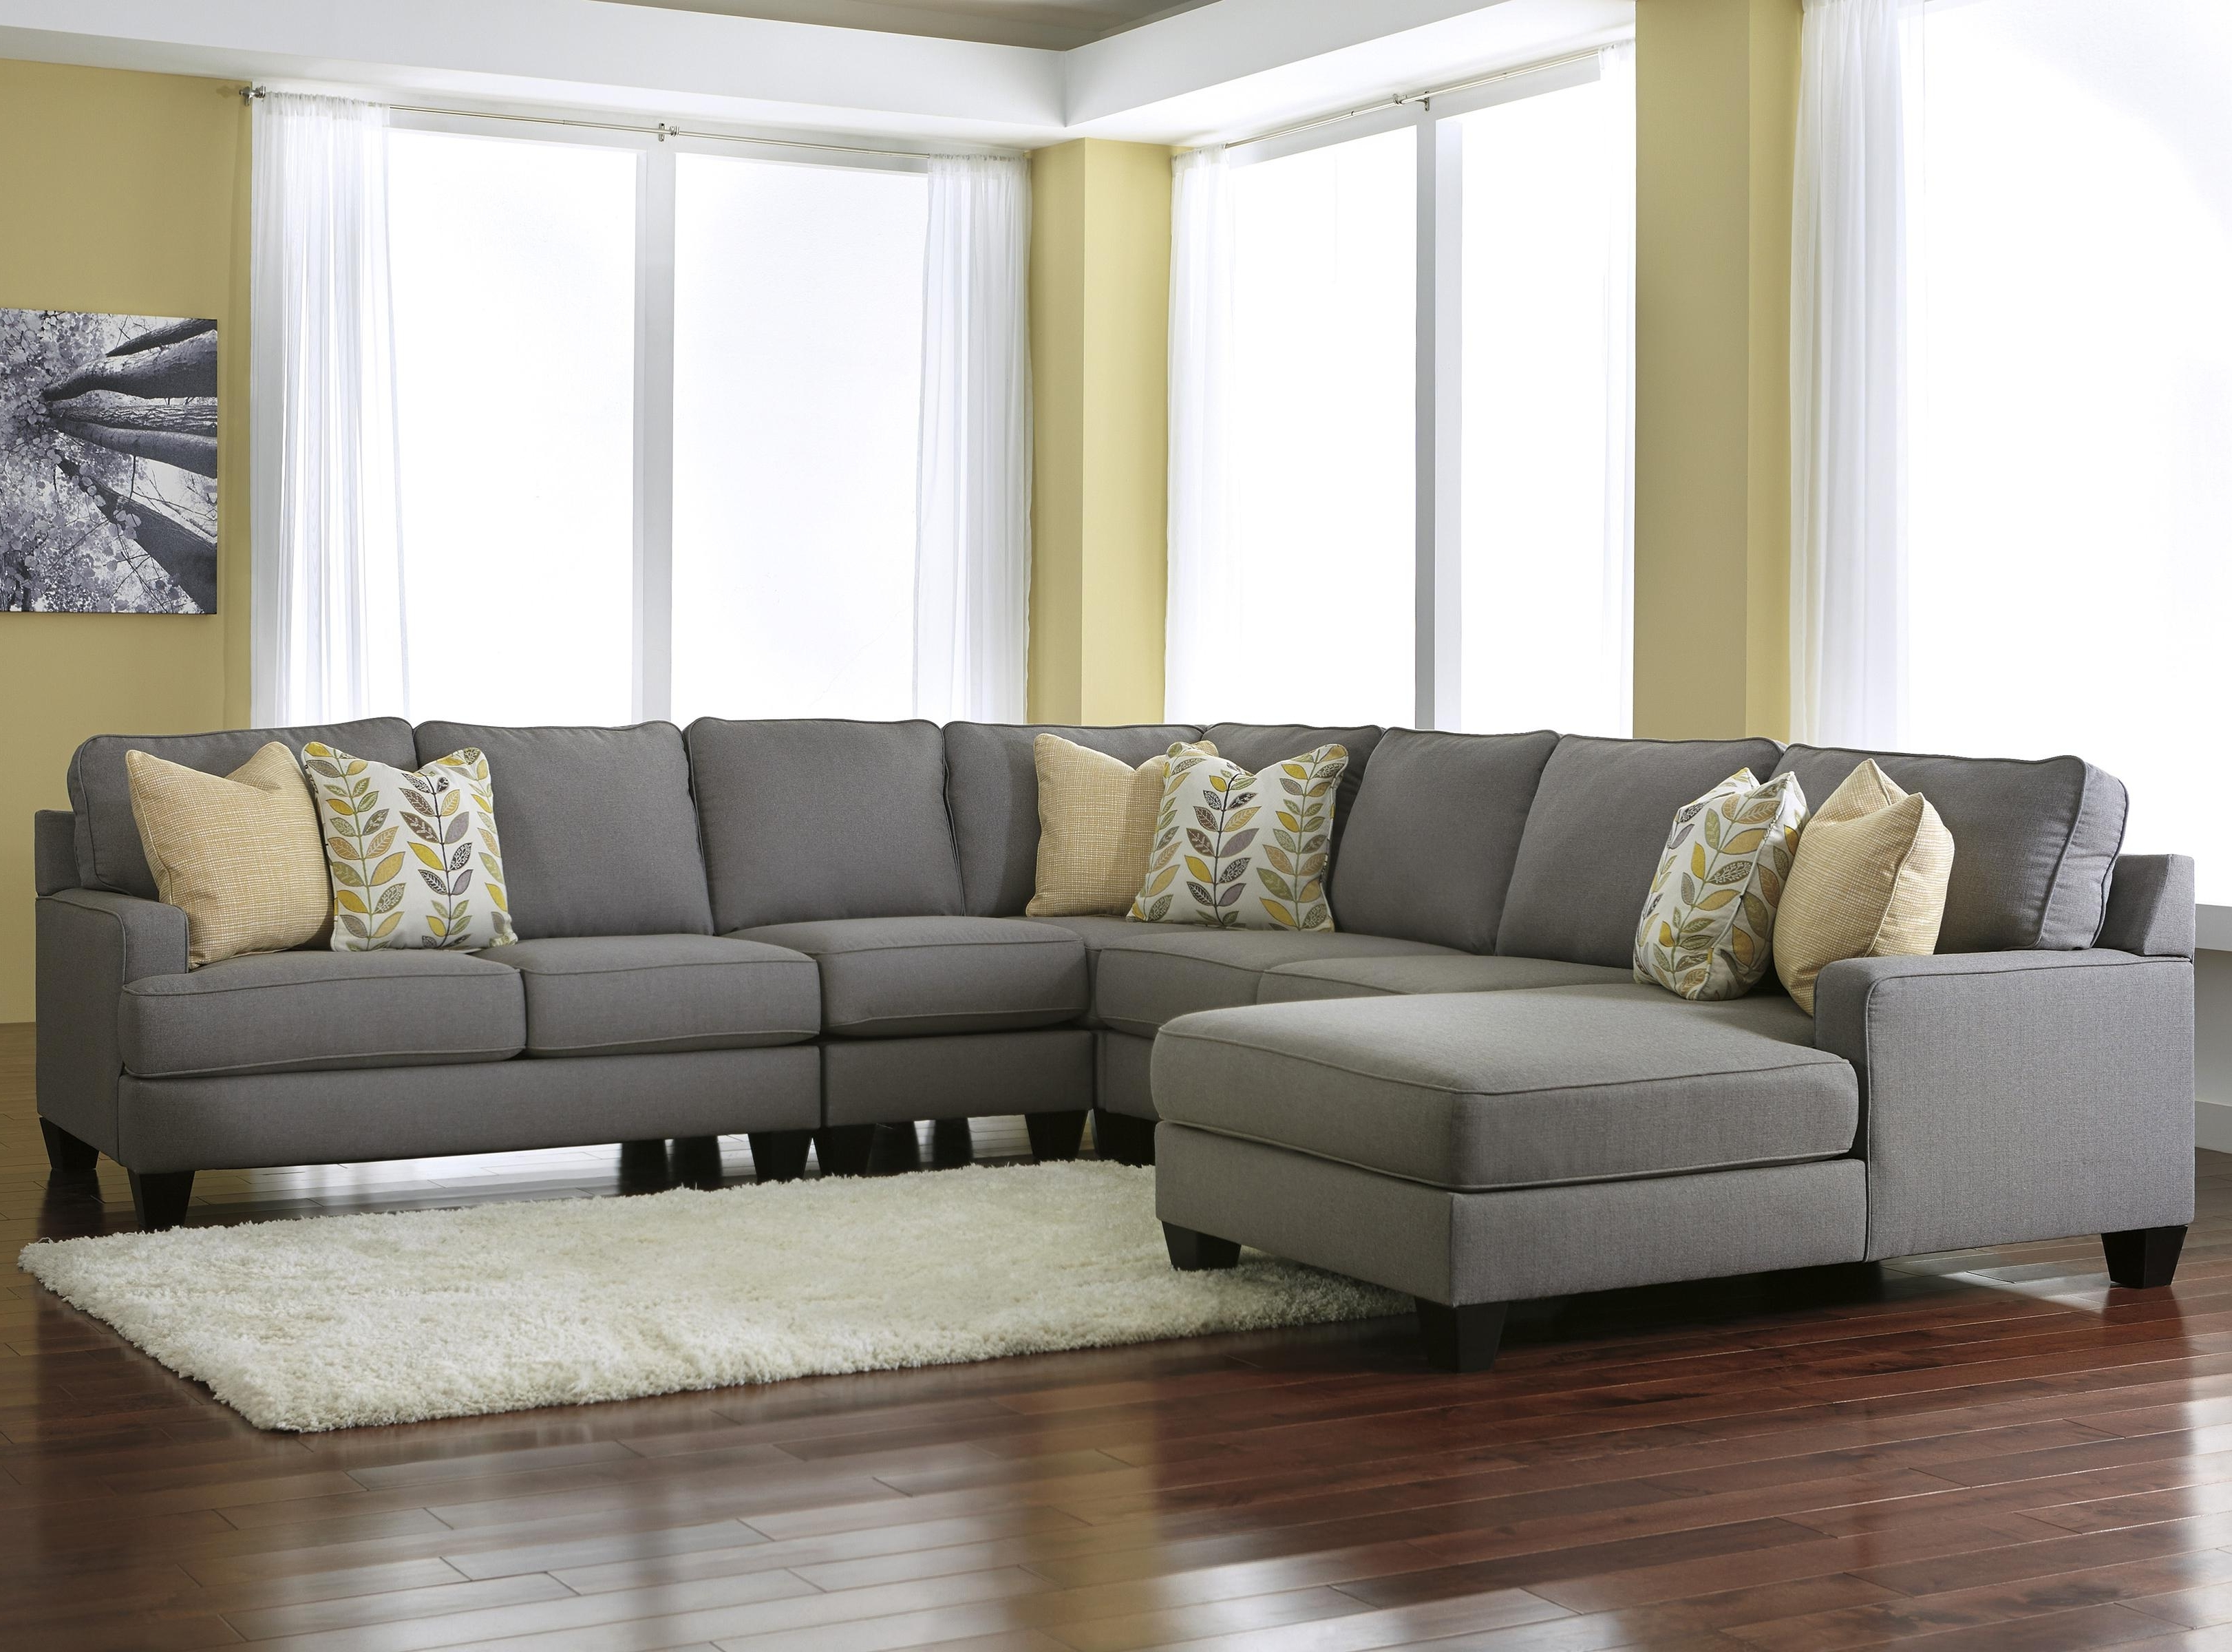 Signature Designashley Chamberly – Alloy Modern 5 Piece Inside Famous Kansas City Mo Sectional Sofas (View 4 of 20)